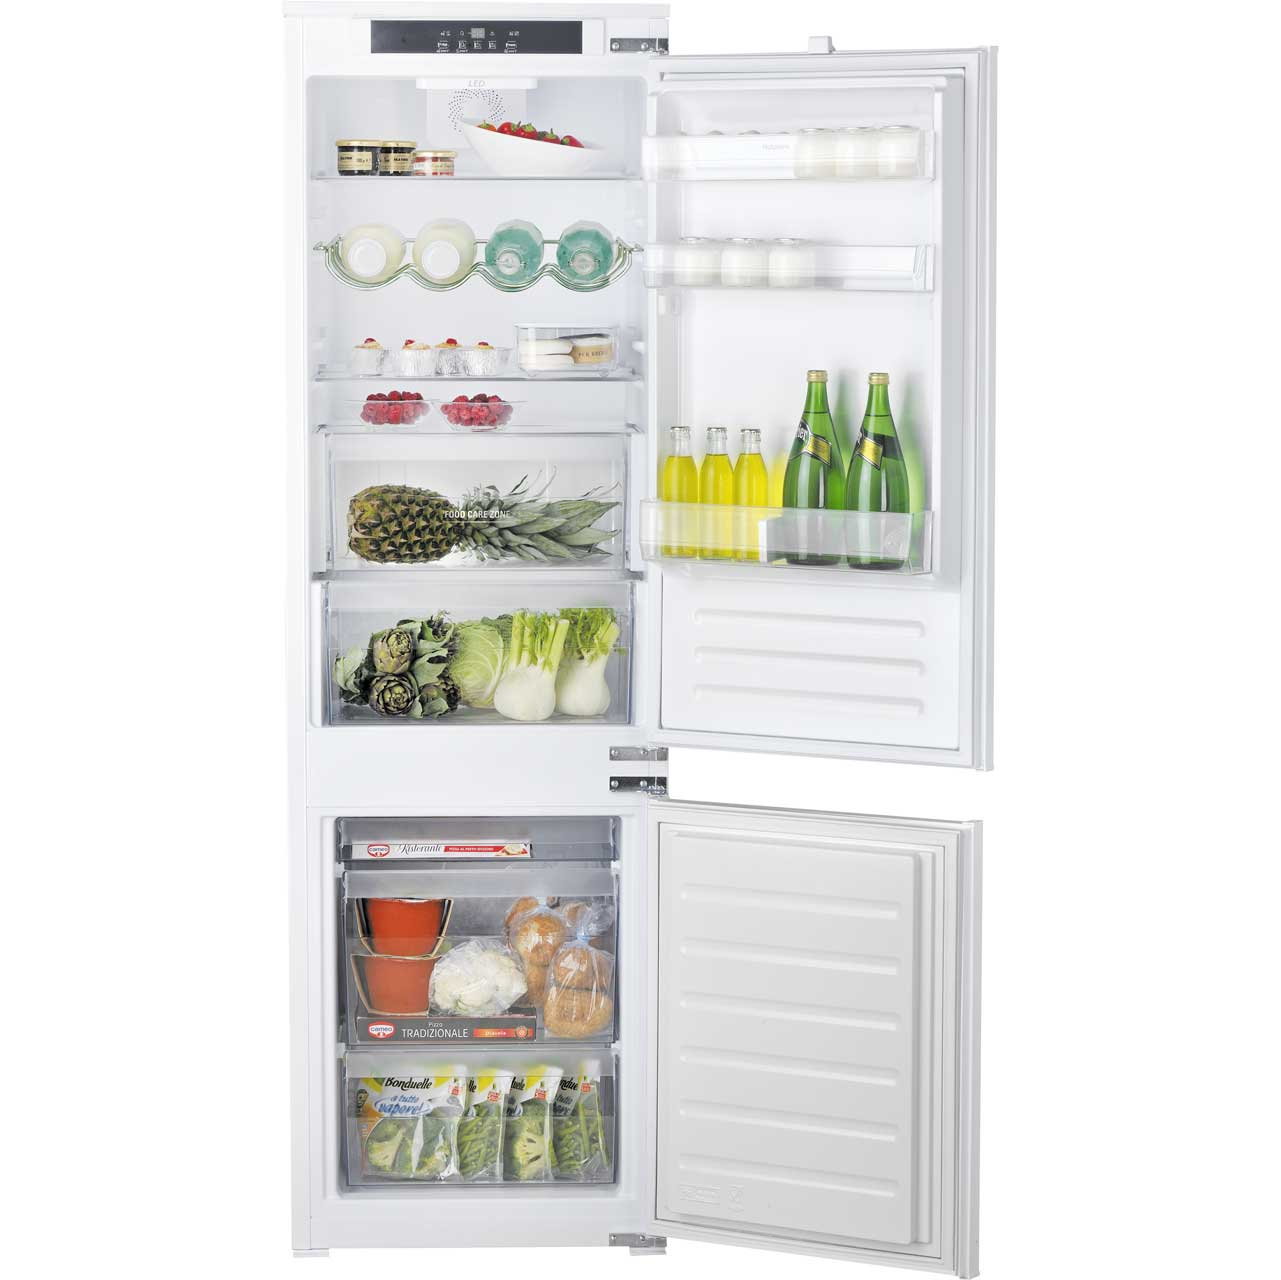 Hotpoint HM7030ECAA Integrated Fridge Freezer in White